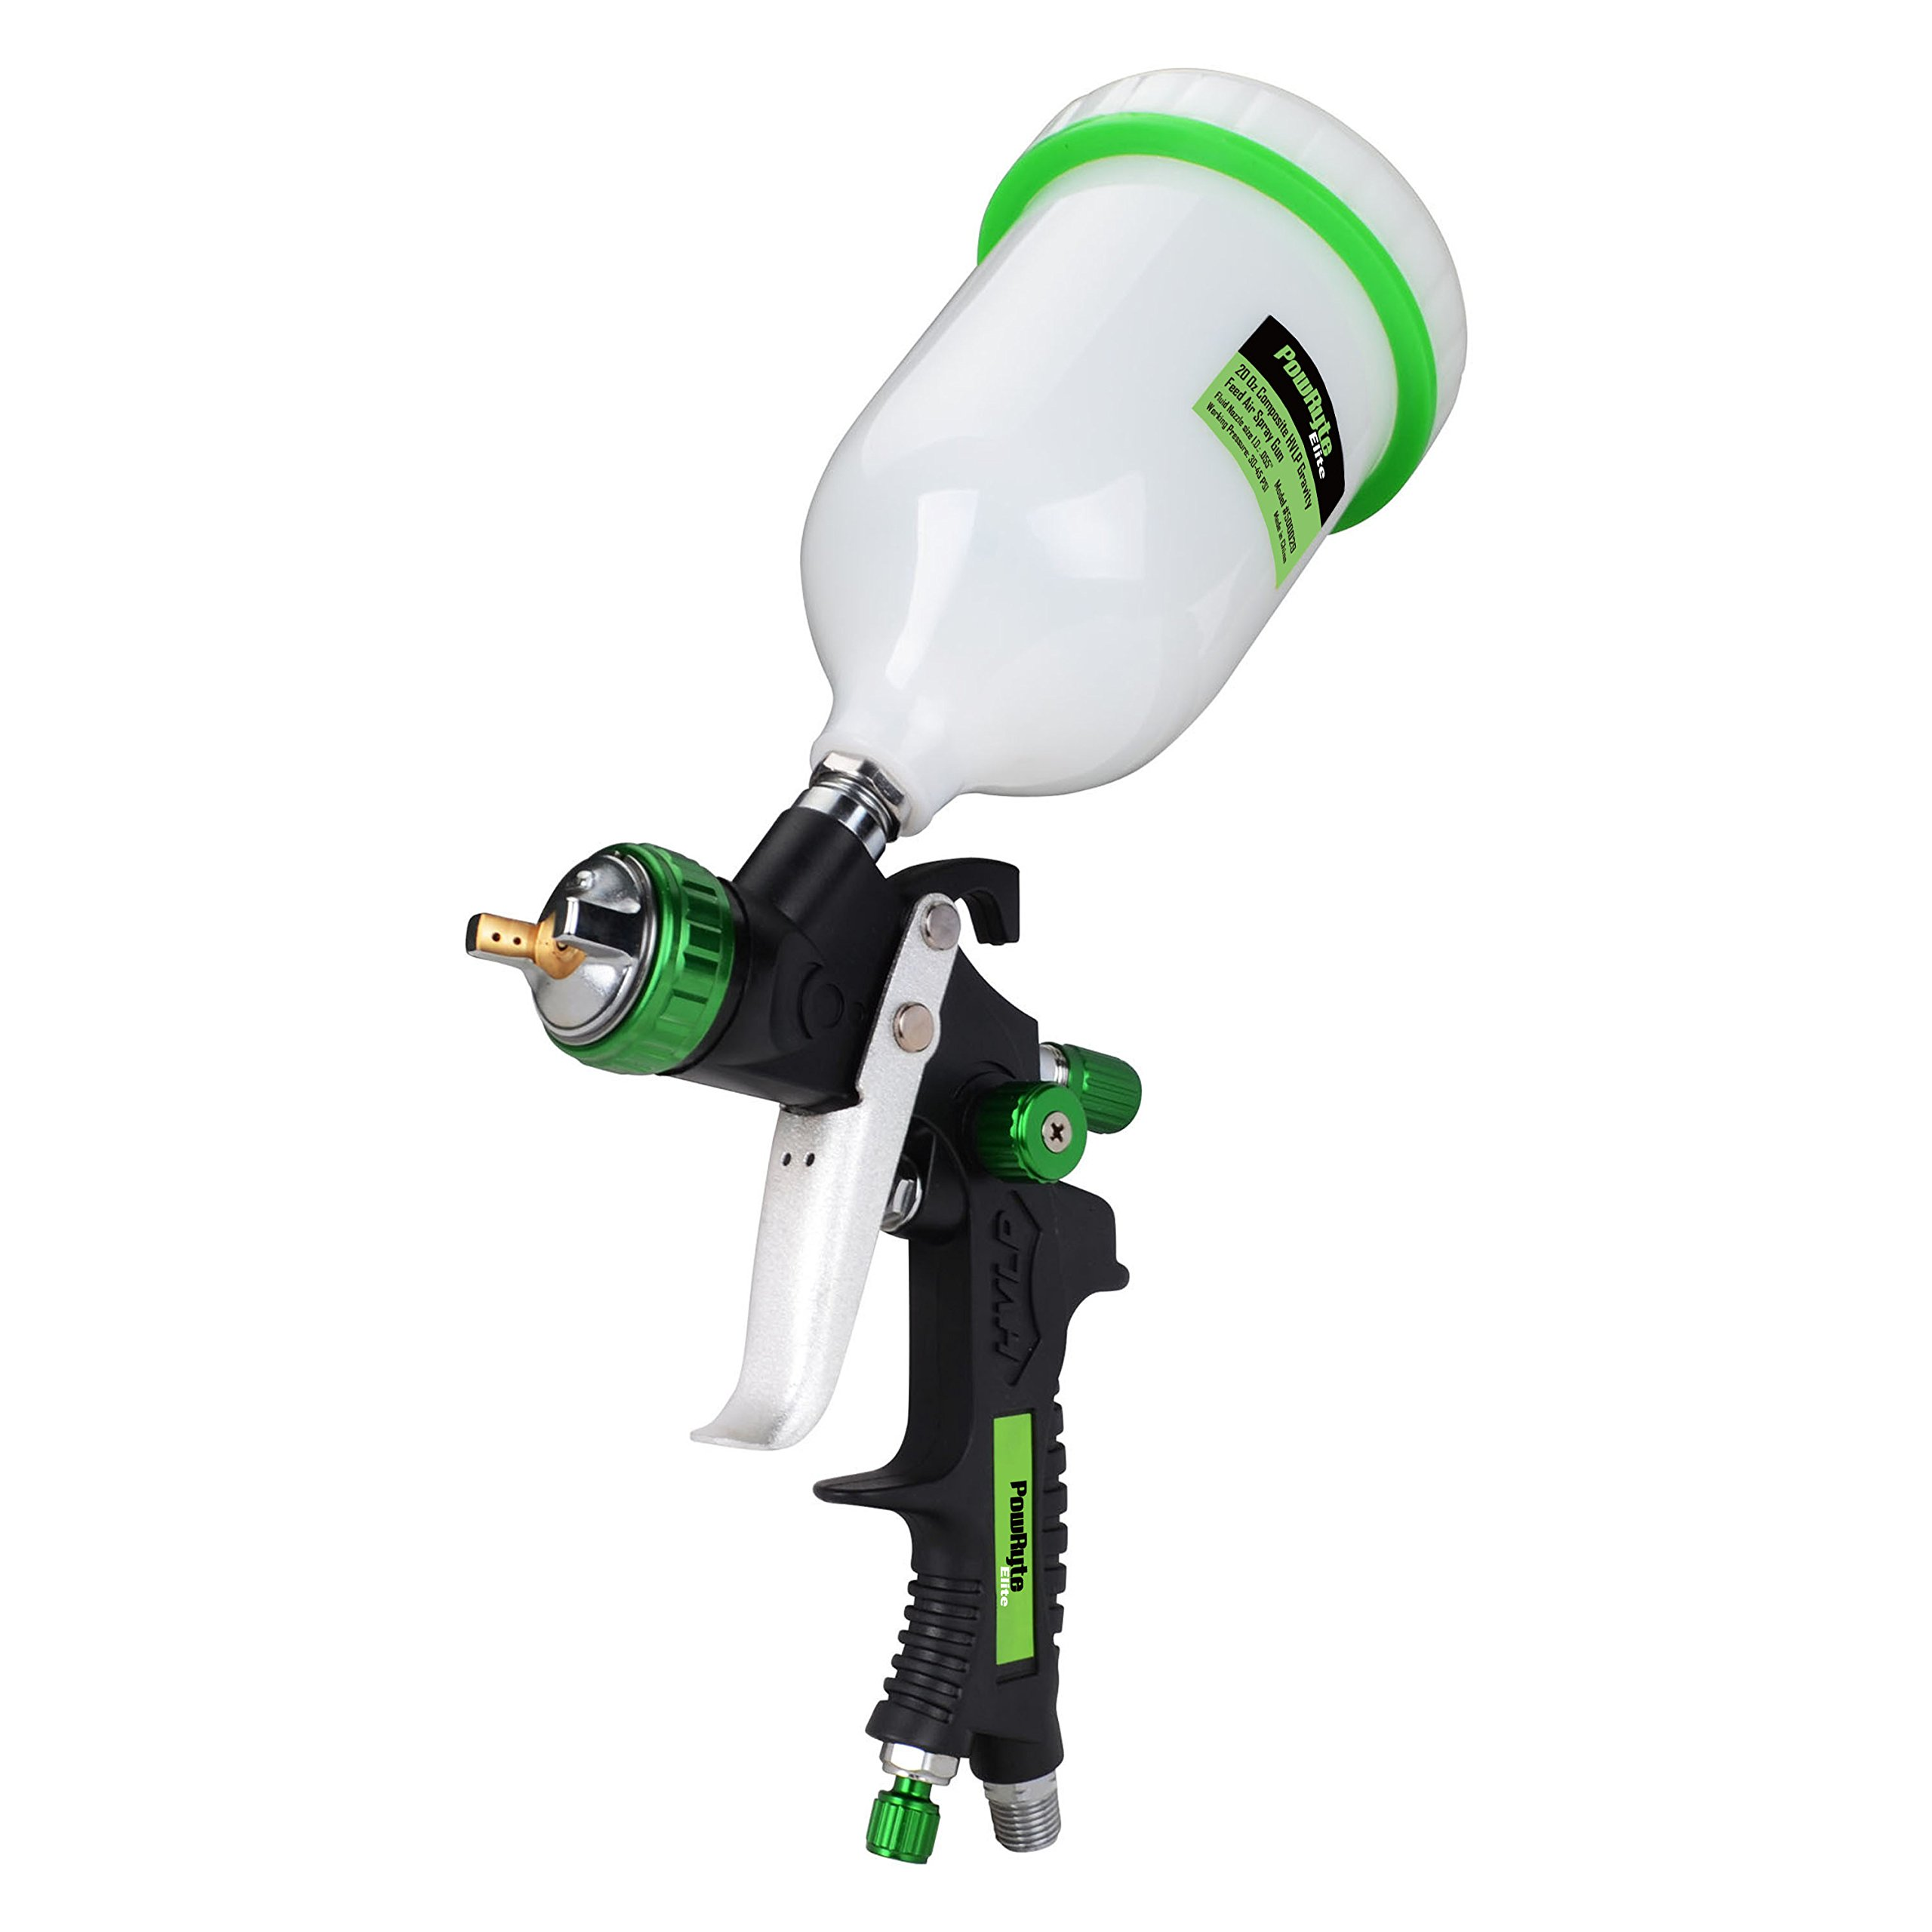 PowRyte Elite 20 Oz Composite HVLP Gravity Feed Air Spray Gun - 1.4mm Nozzle